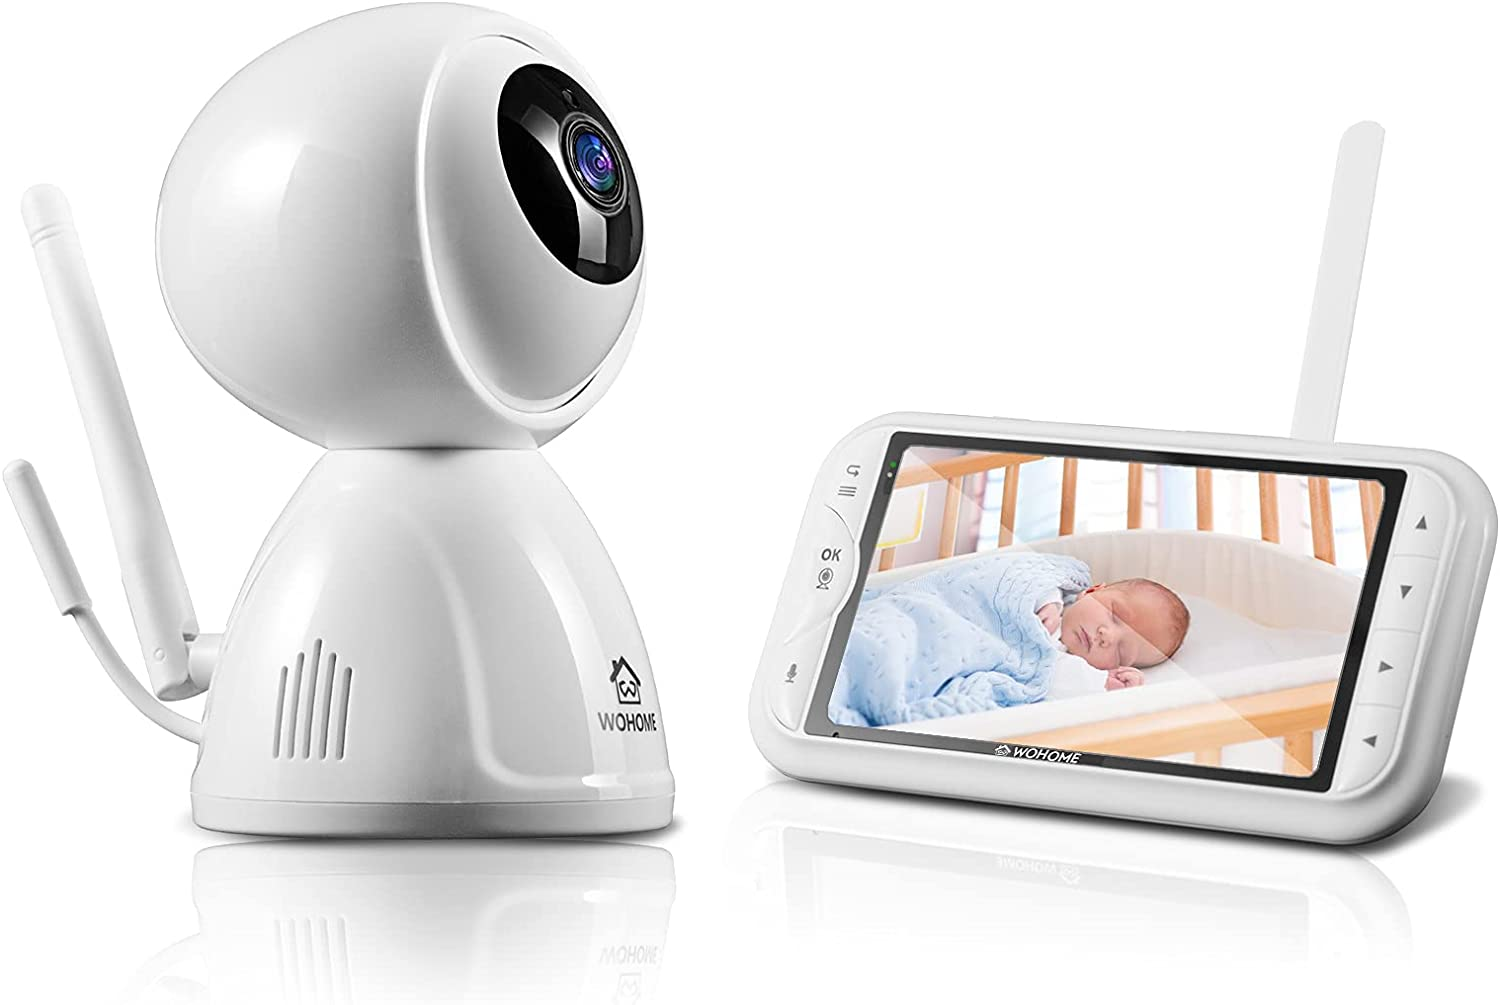 Wohome Video Baby Monitor with Camera and Audio, 5-inch 720p Dis